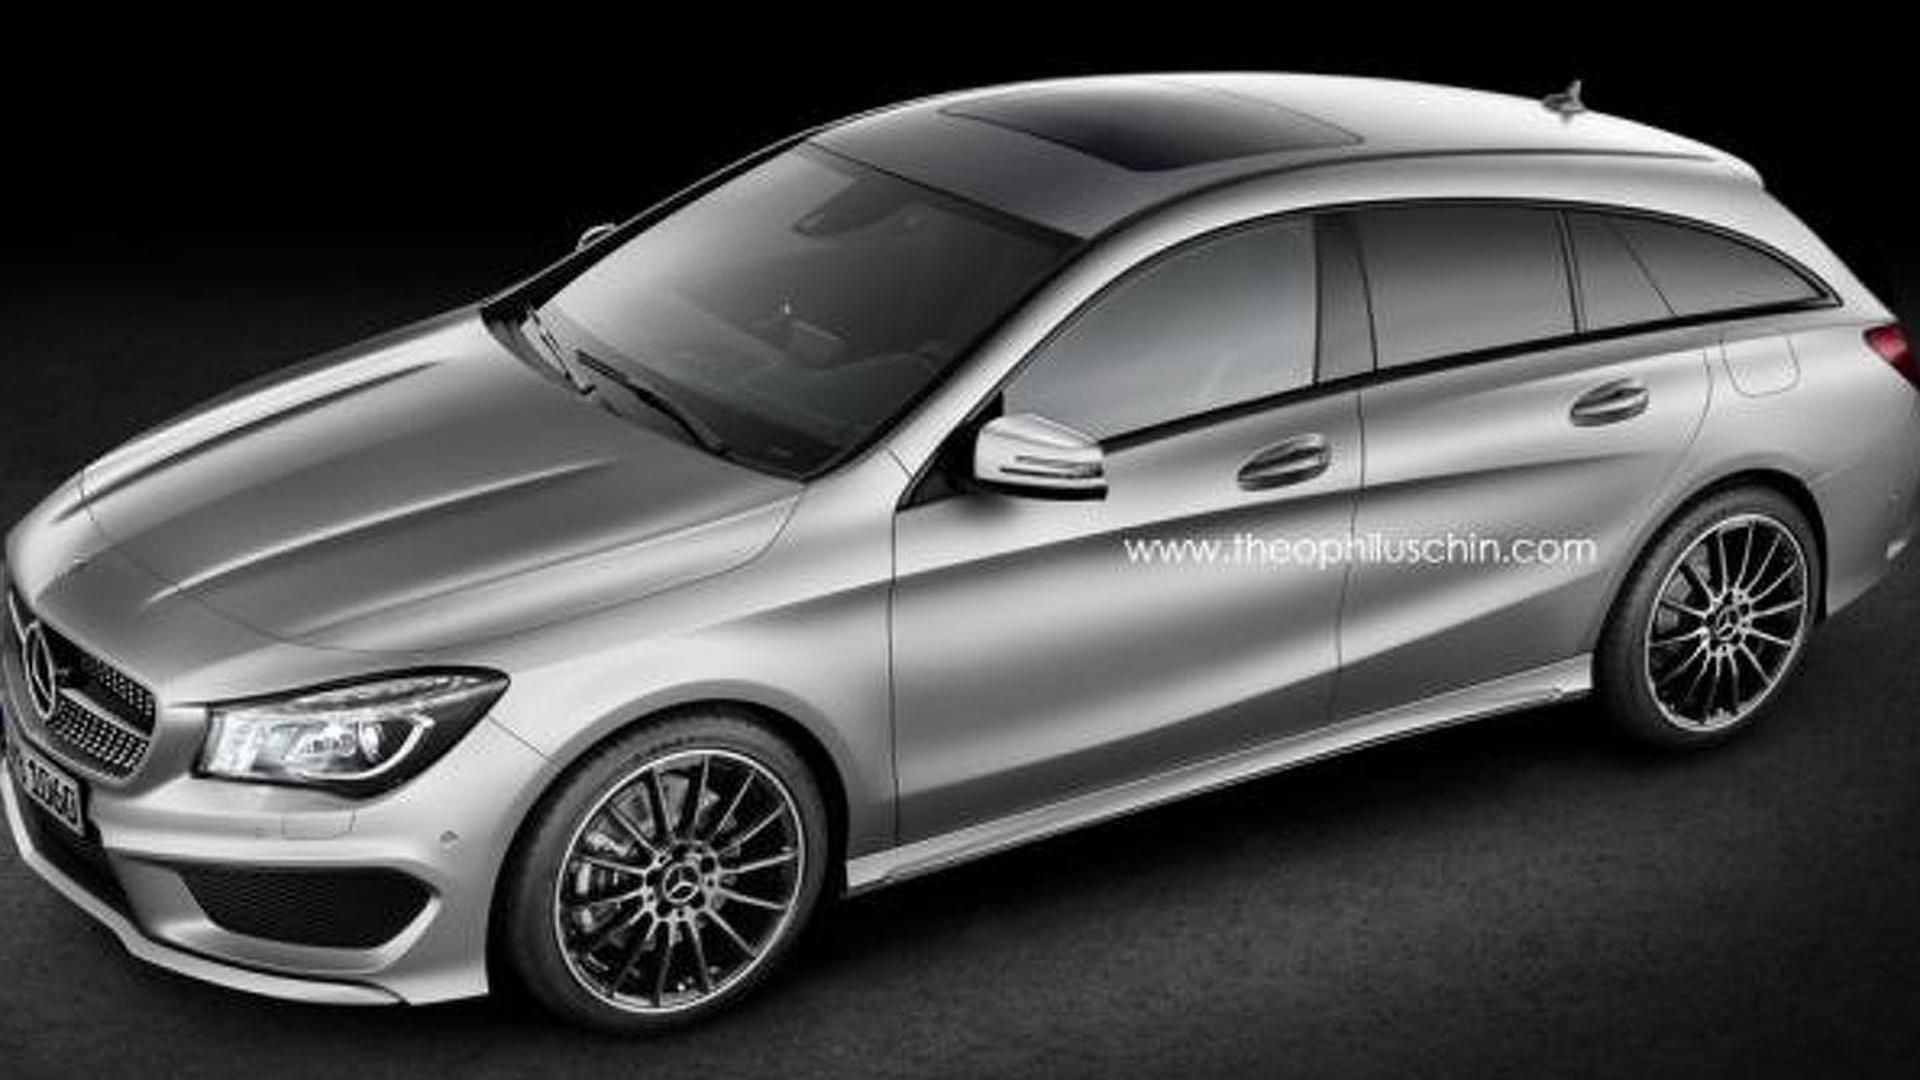 Mercedes A-Class Cabrio axed, CLA Shooting Brake to be the last MFA variant - report